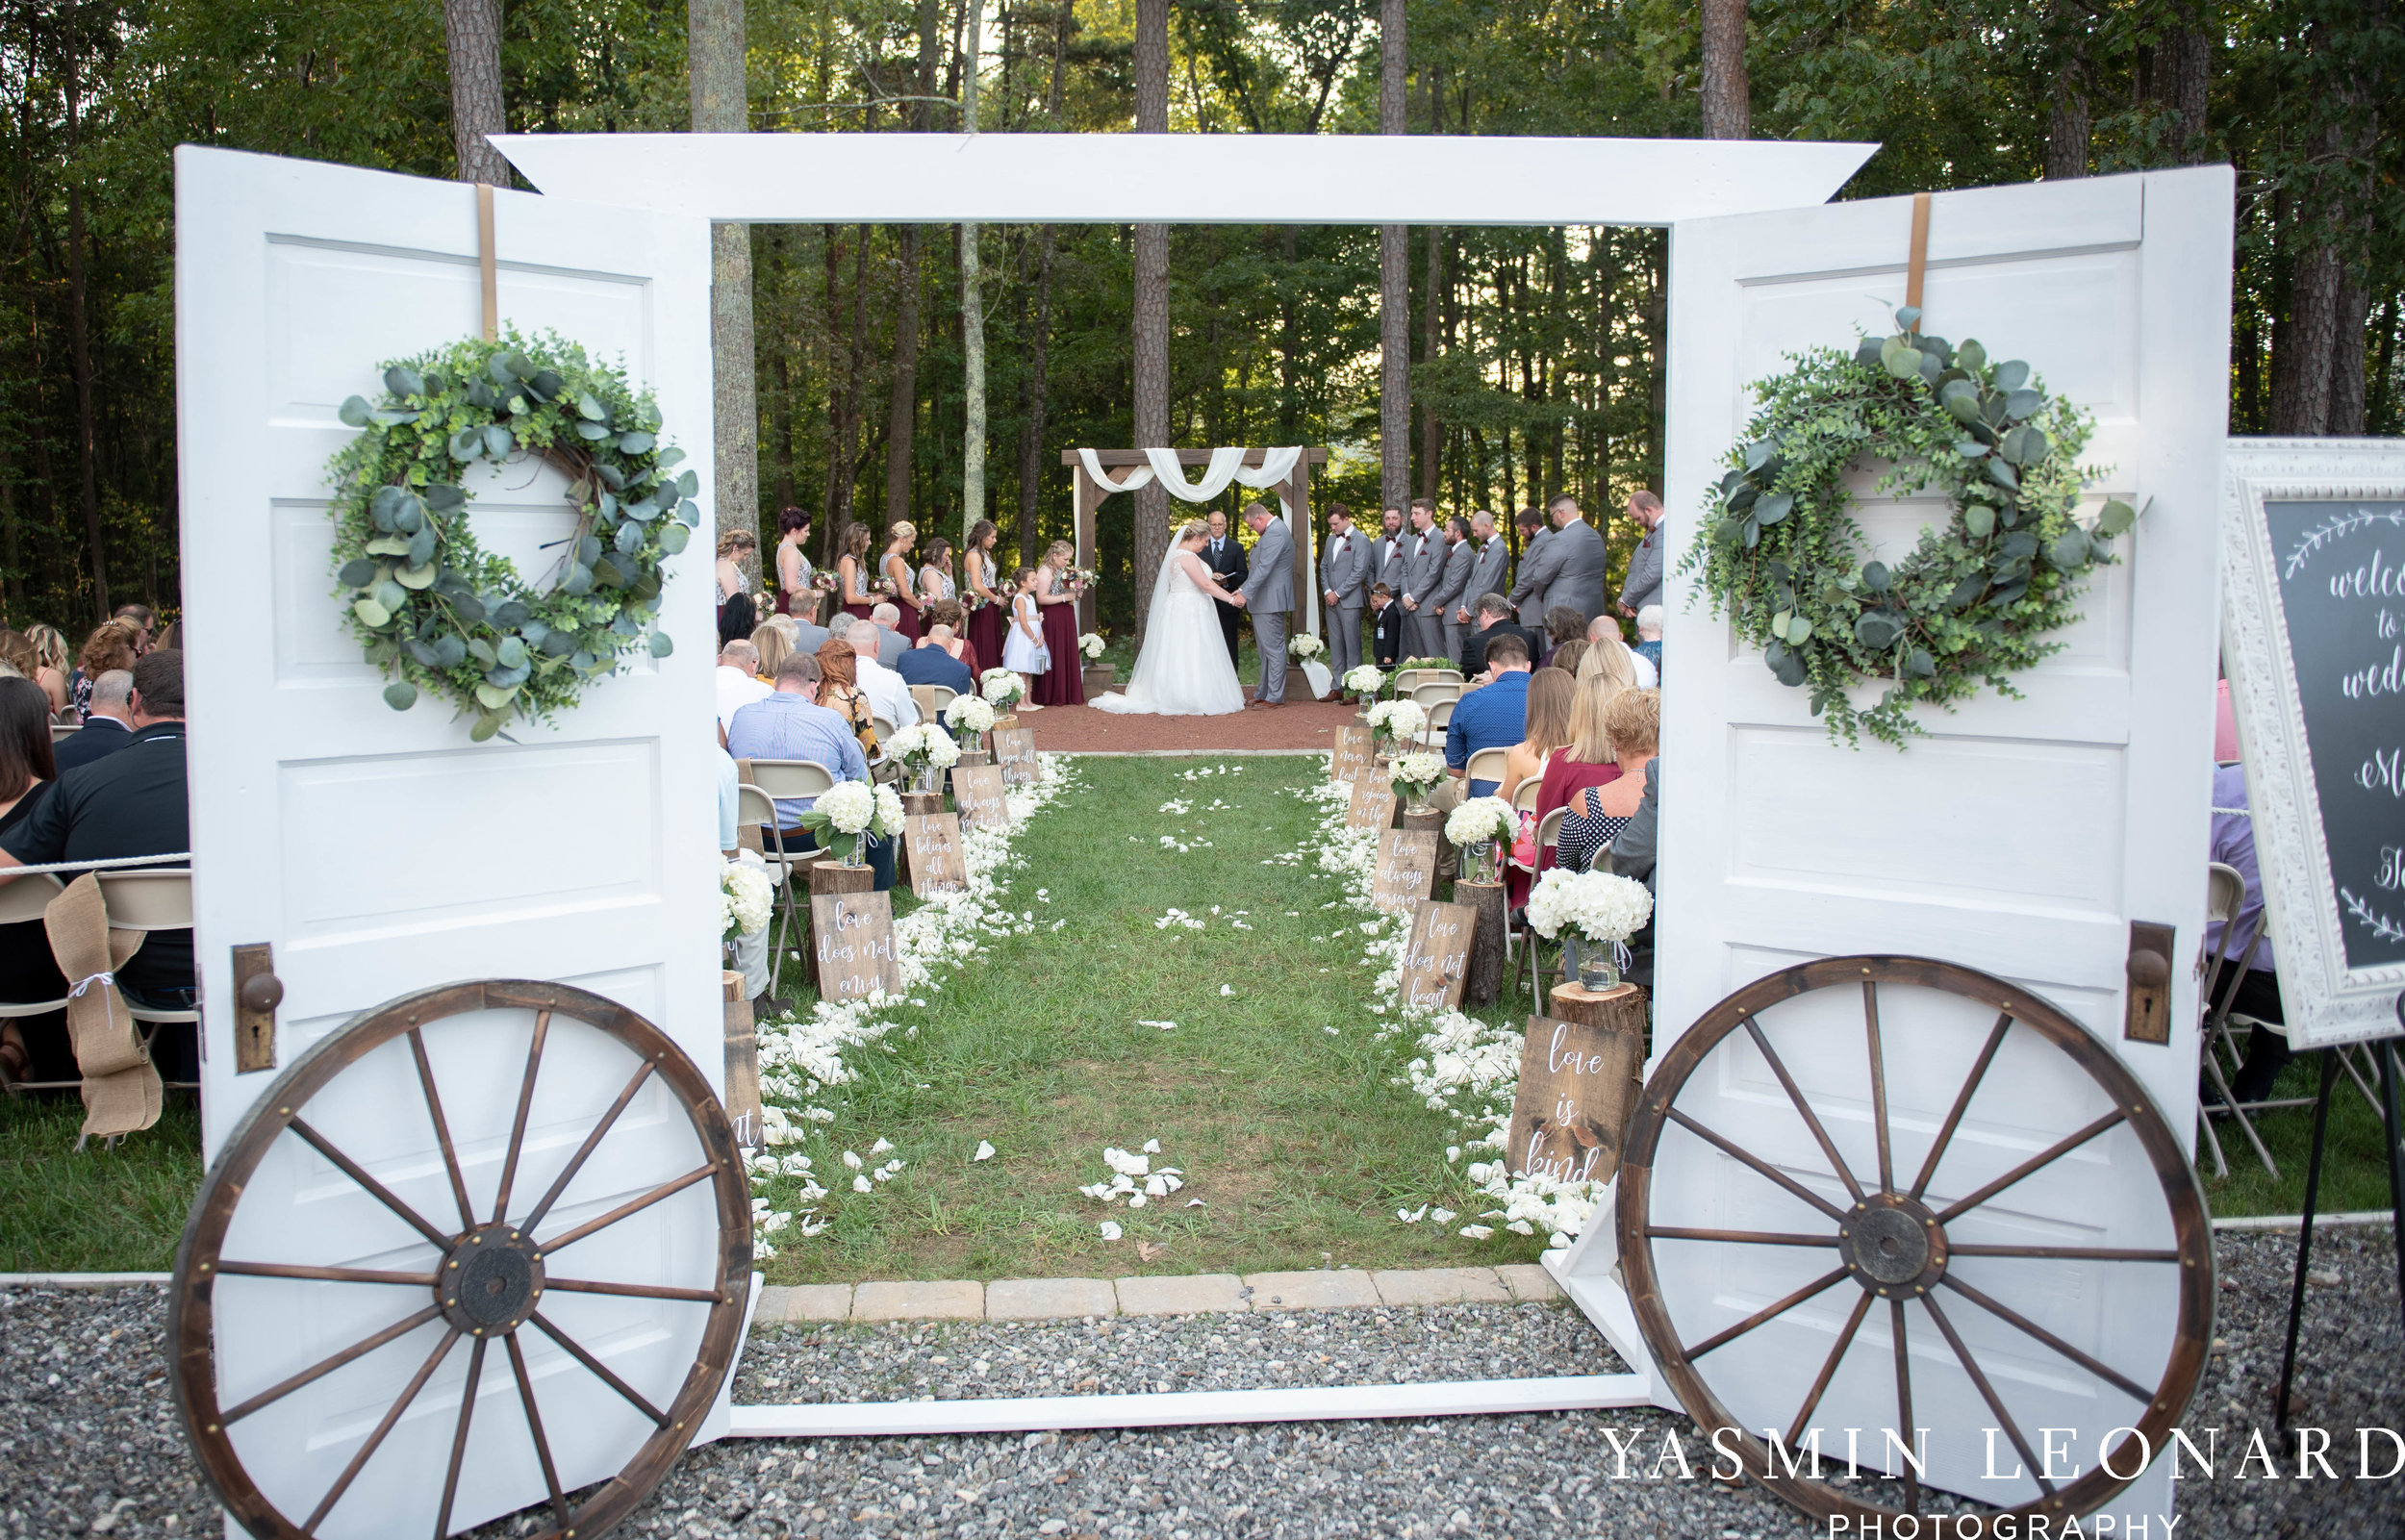 Danner Farms - NC Wedding Venues - NC Barns - Statesville NC - NC Wedding Photographer - High Point Wedding Photographer - Yasmin Leonard Photography-41.jpg